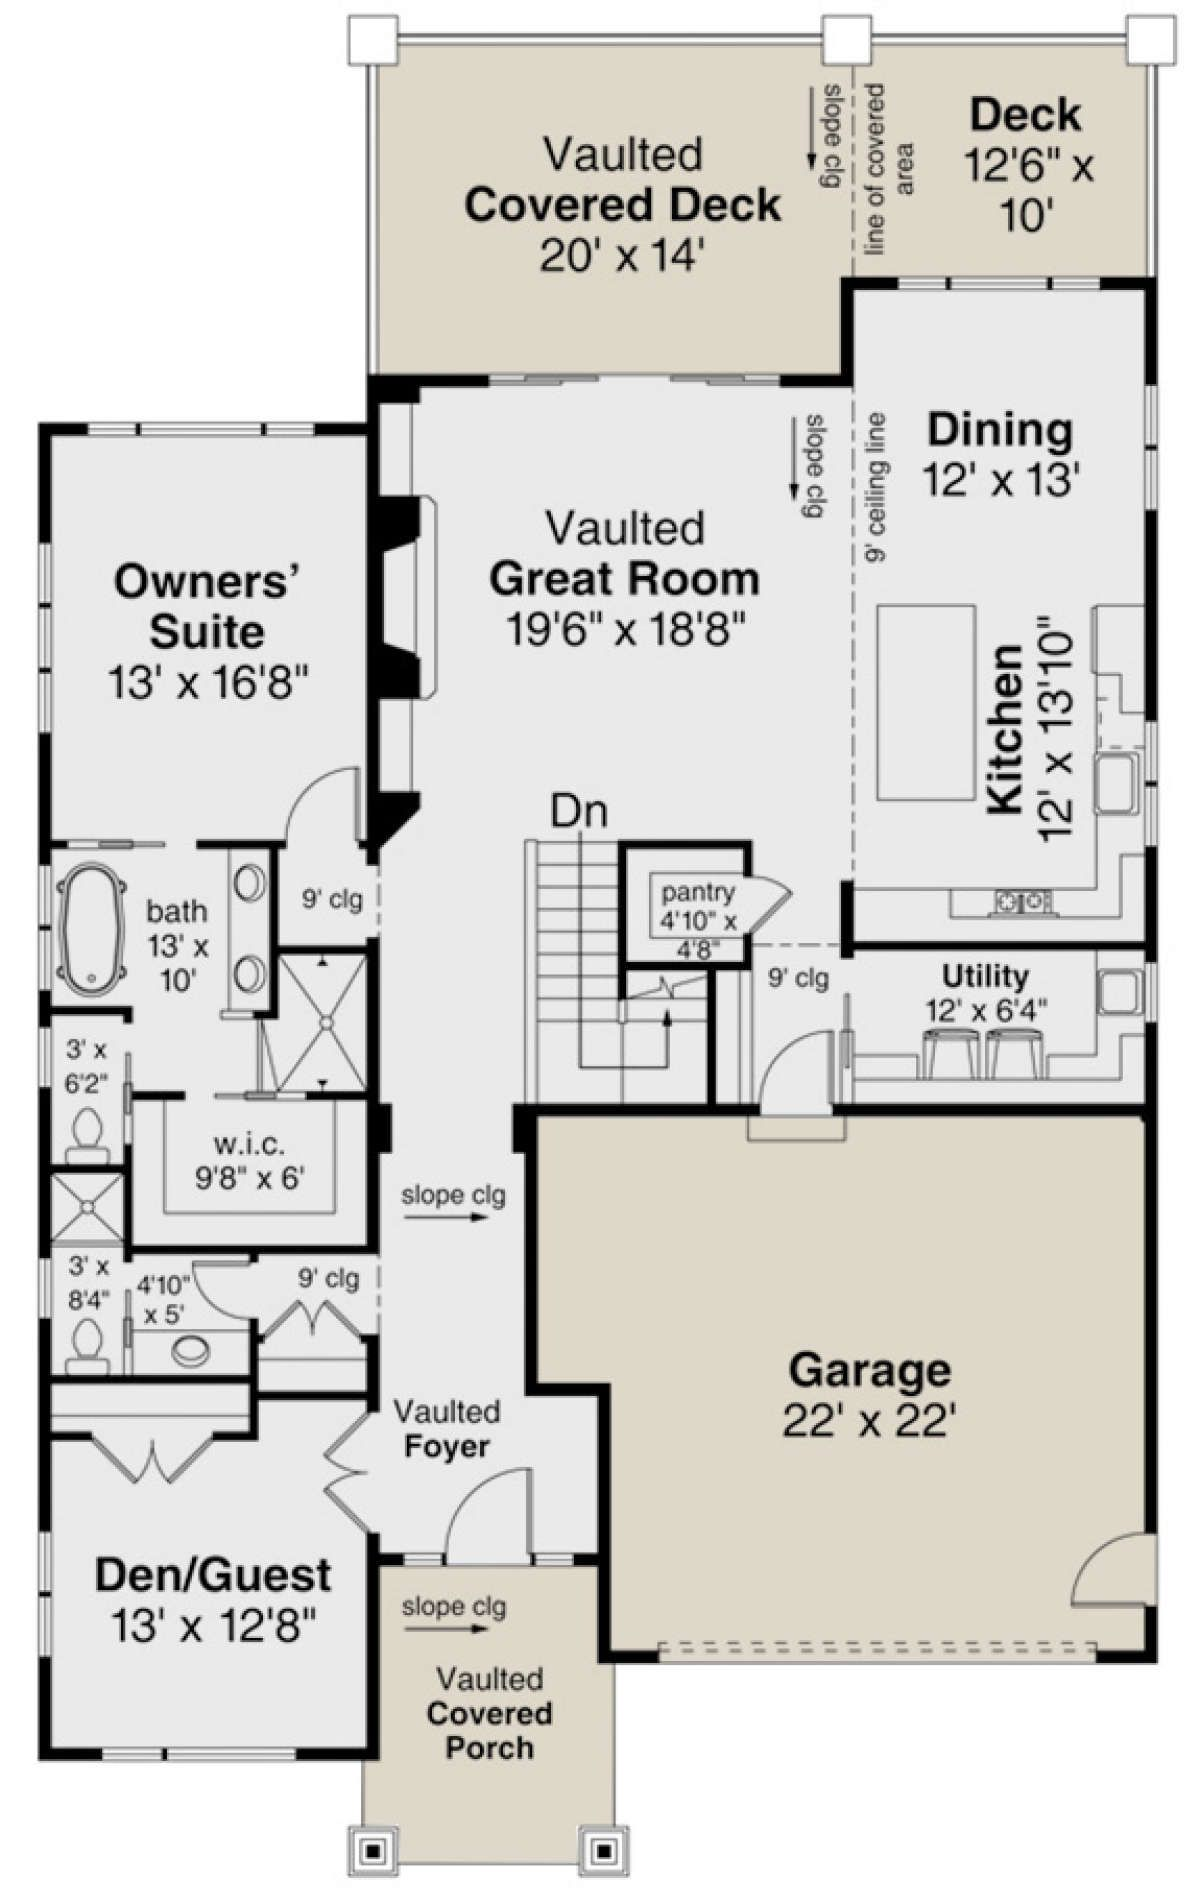 House Plan 035 00833 Contemporary Plan 2 928 Square Feet 4 Bedrooms 3 Bathrooms Contemporary House Plans House Plans How To Plan